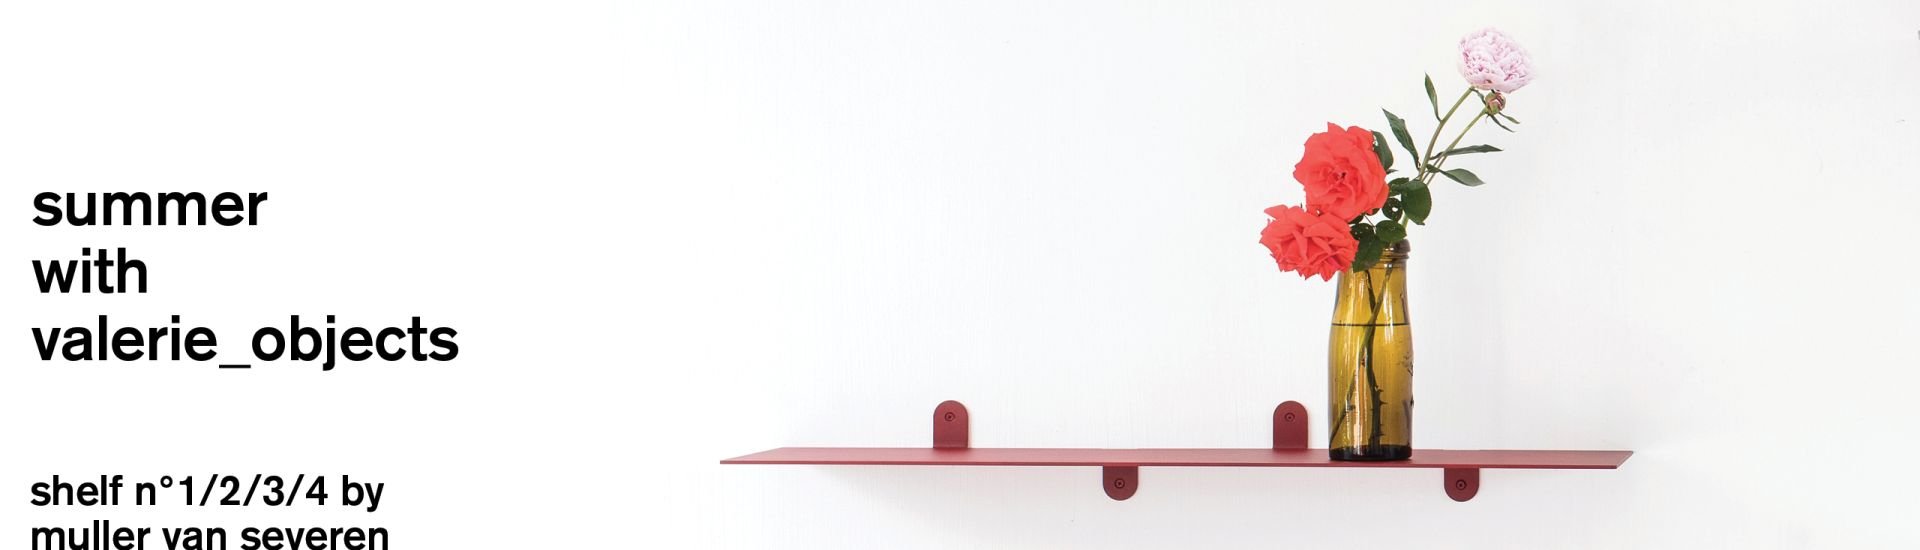 shelf n°1, 2, 3, 4 by muller van severen